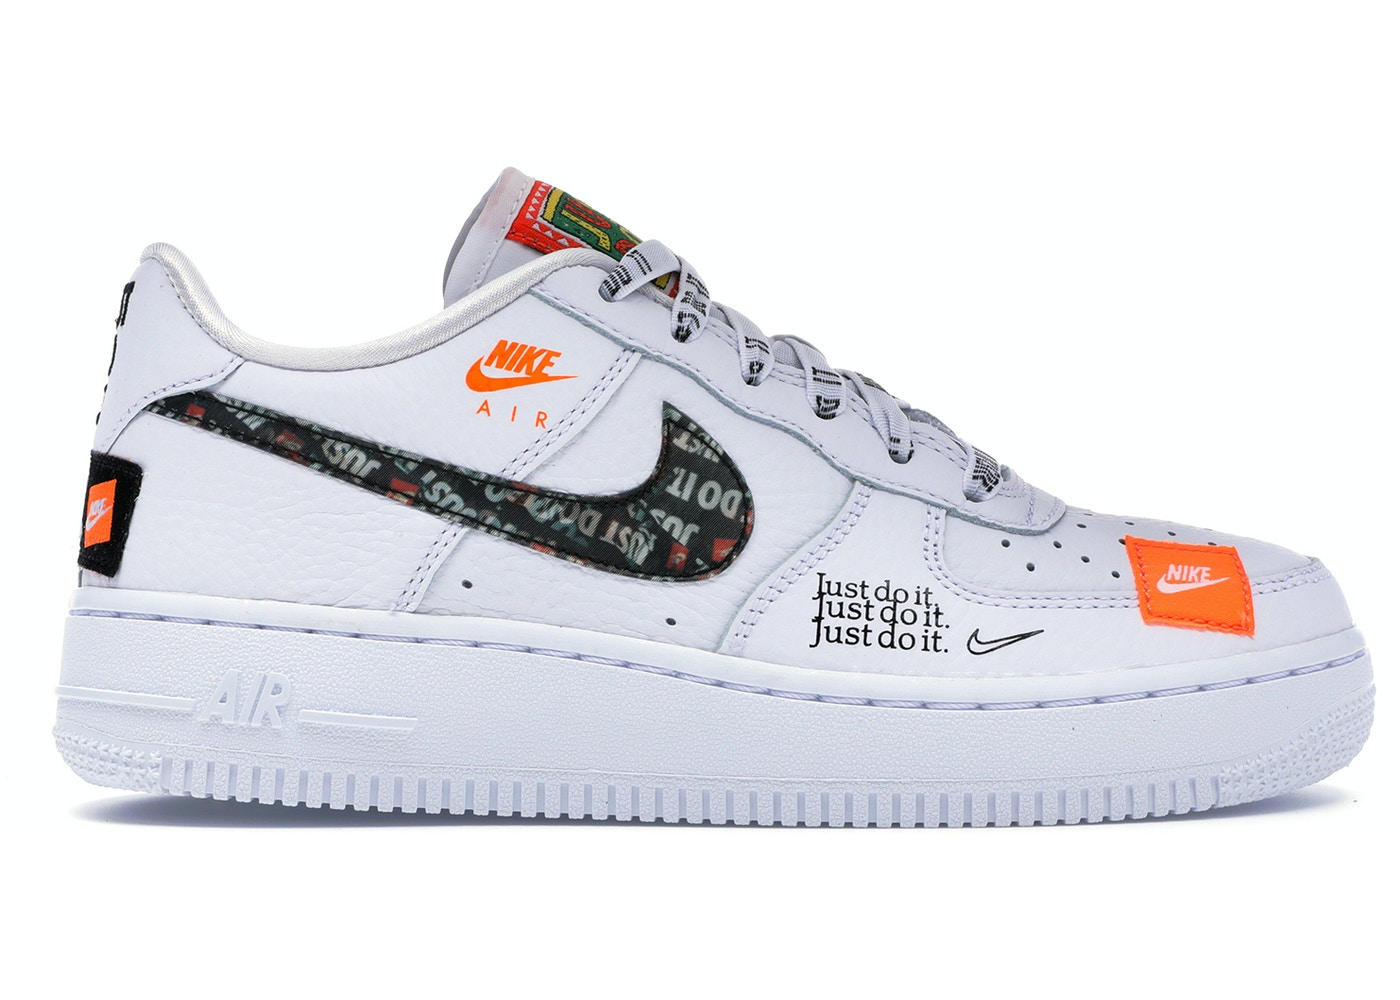 Nike Air Force 1 Low GS Nike Air Force 1 Low Just Do It Pack White (GS) - AO3977-100